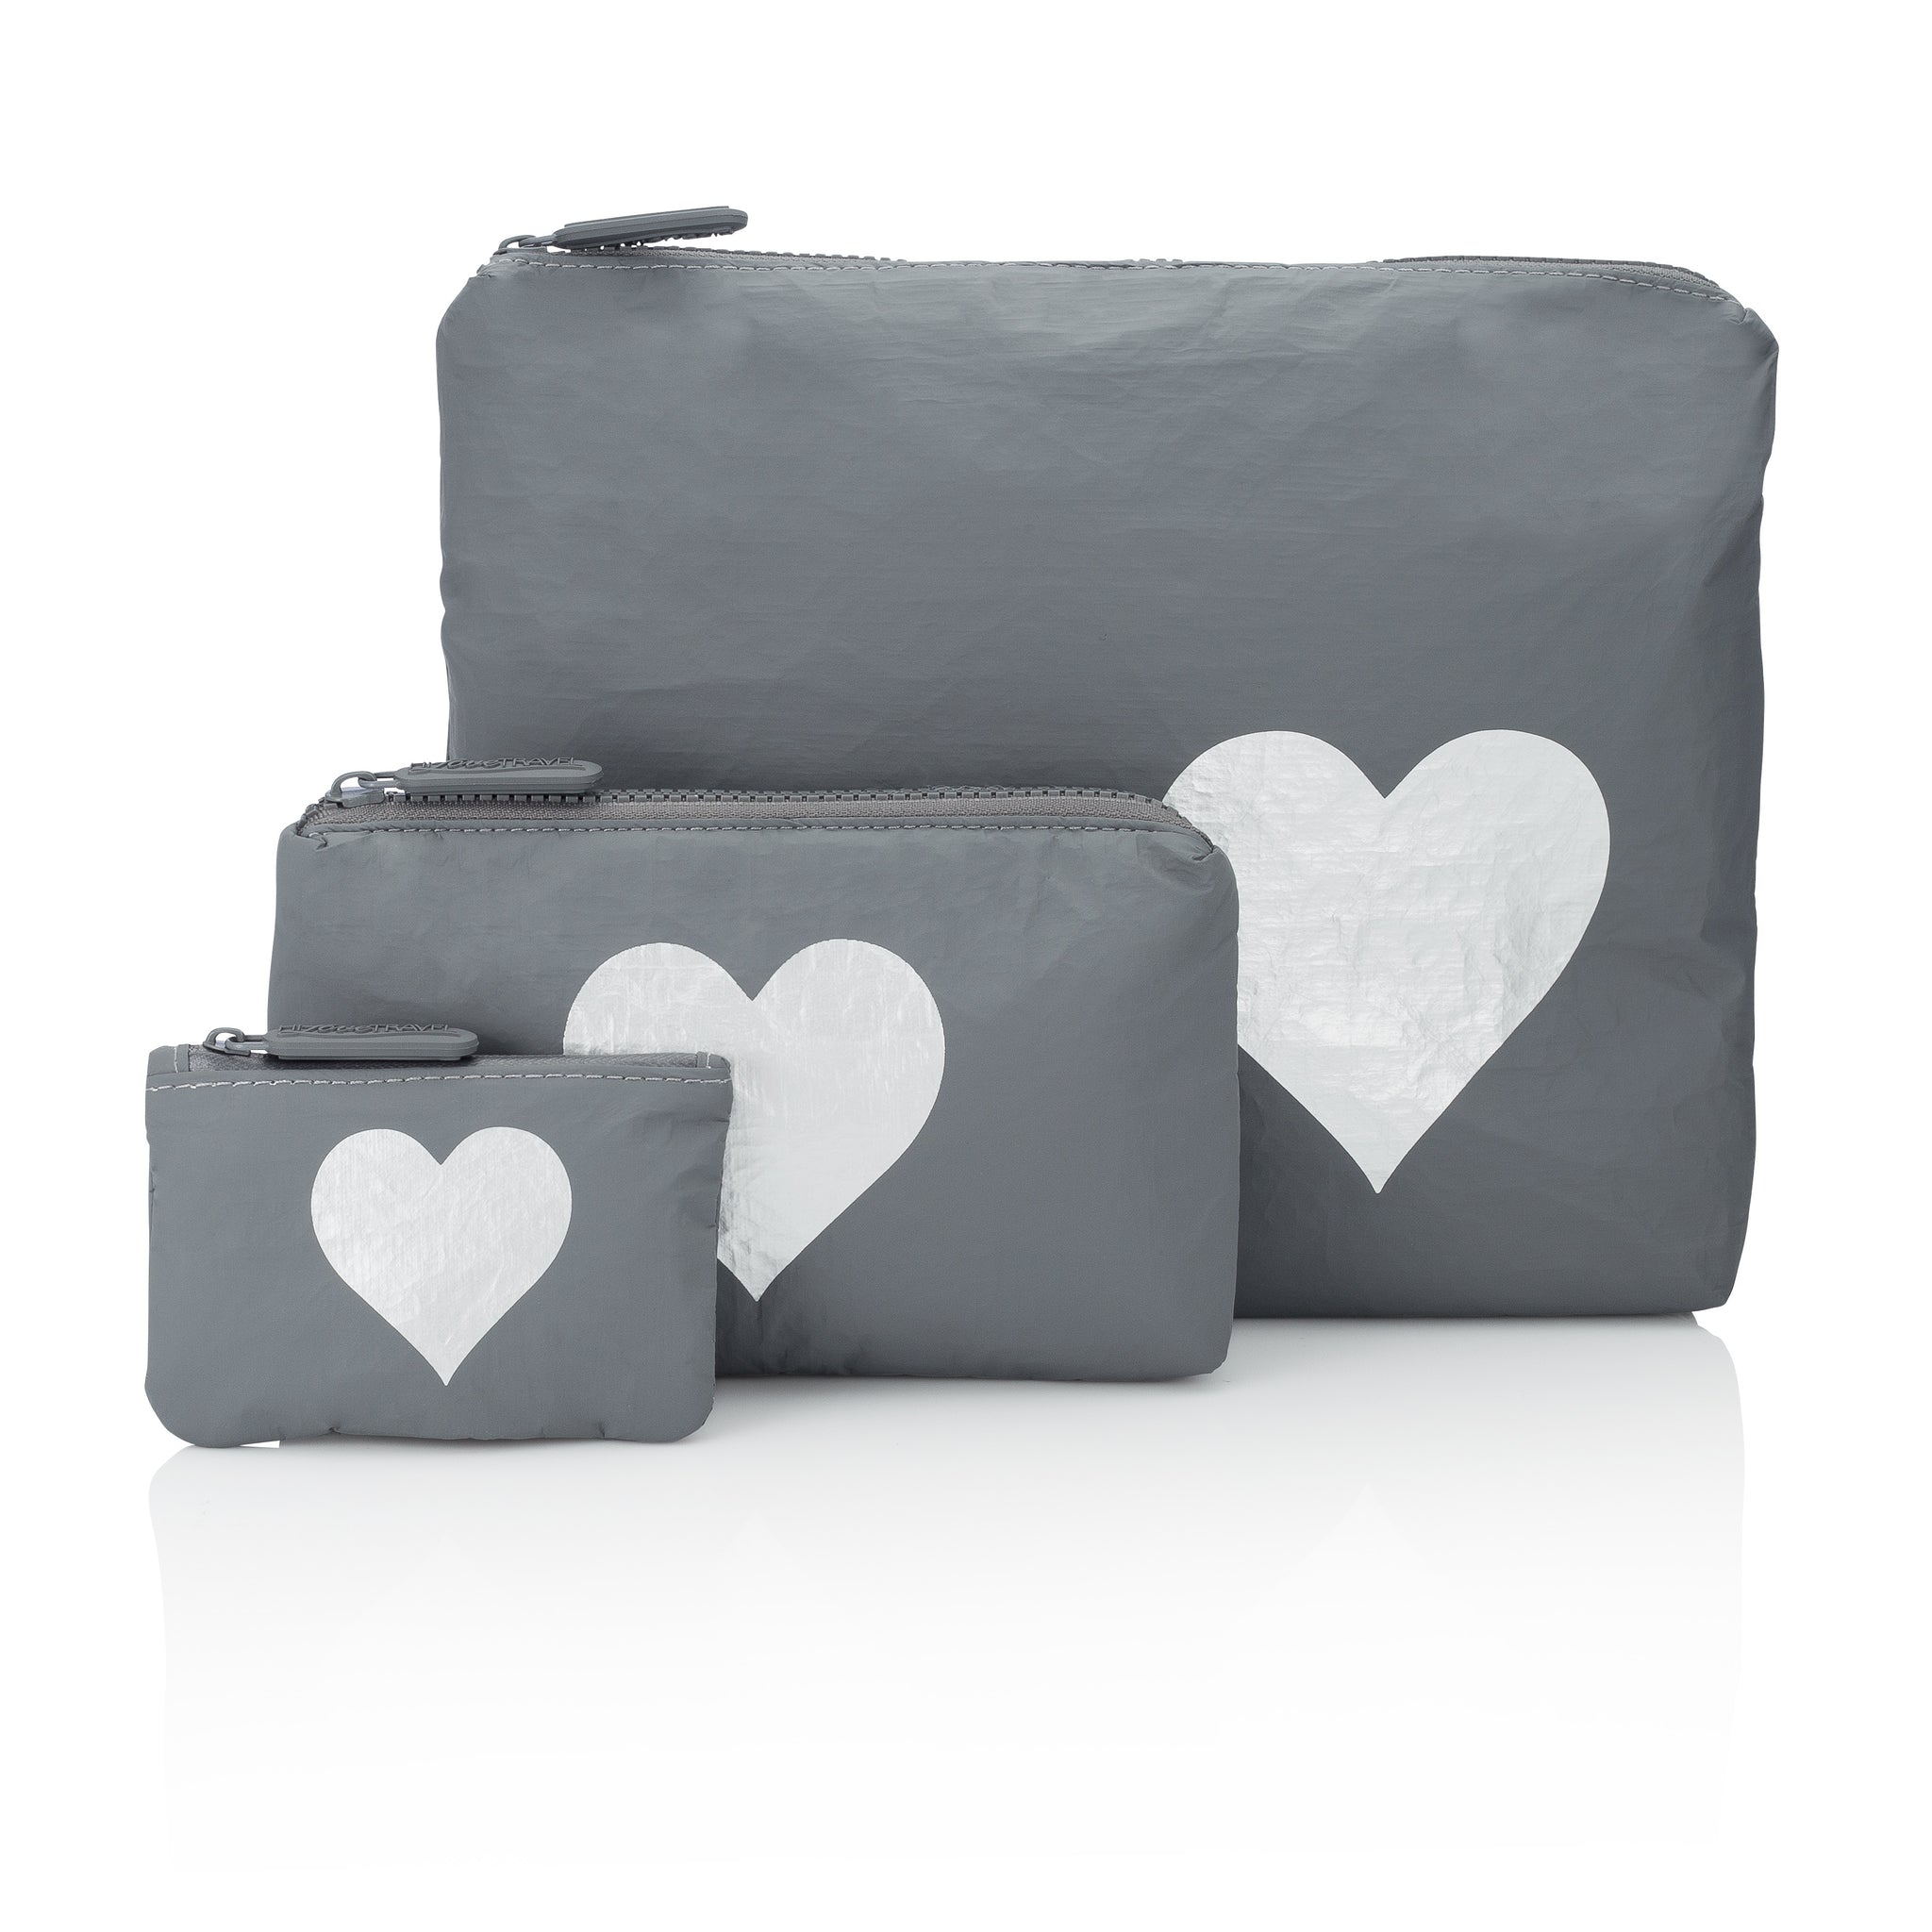 Travel Pack - Makeup Bag - Set of Three Packs - Cool Gray HLT Collection with Metallic Silver Heart